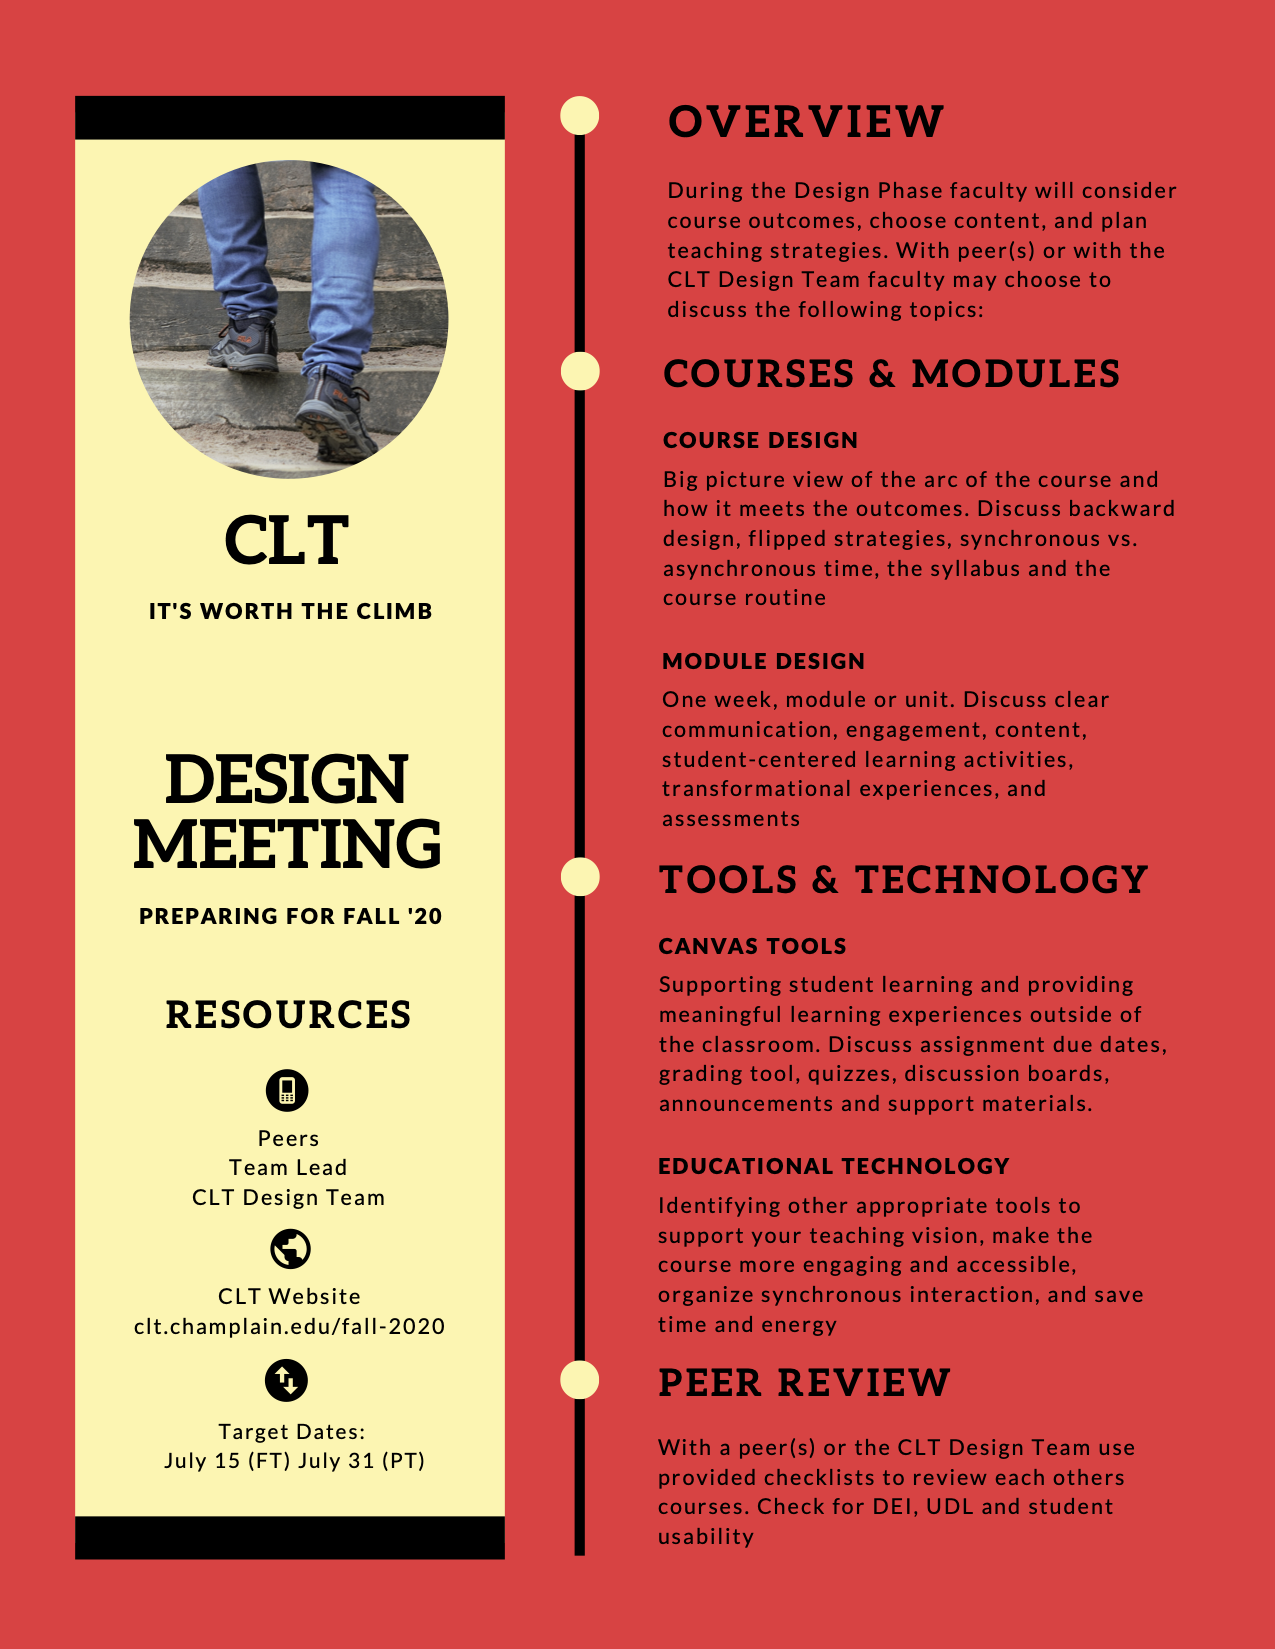 Infographic suggesting five possible directions for faculty conversation during the Design Check-In: big-picture course design, module design, Canvas tools, other educational technology, and peer review. Screenreader accessible version available in the caption.